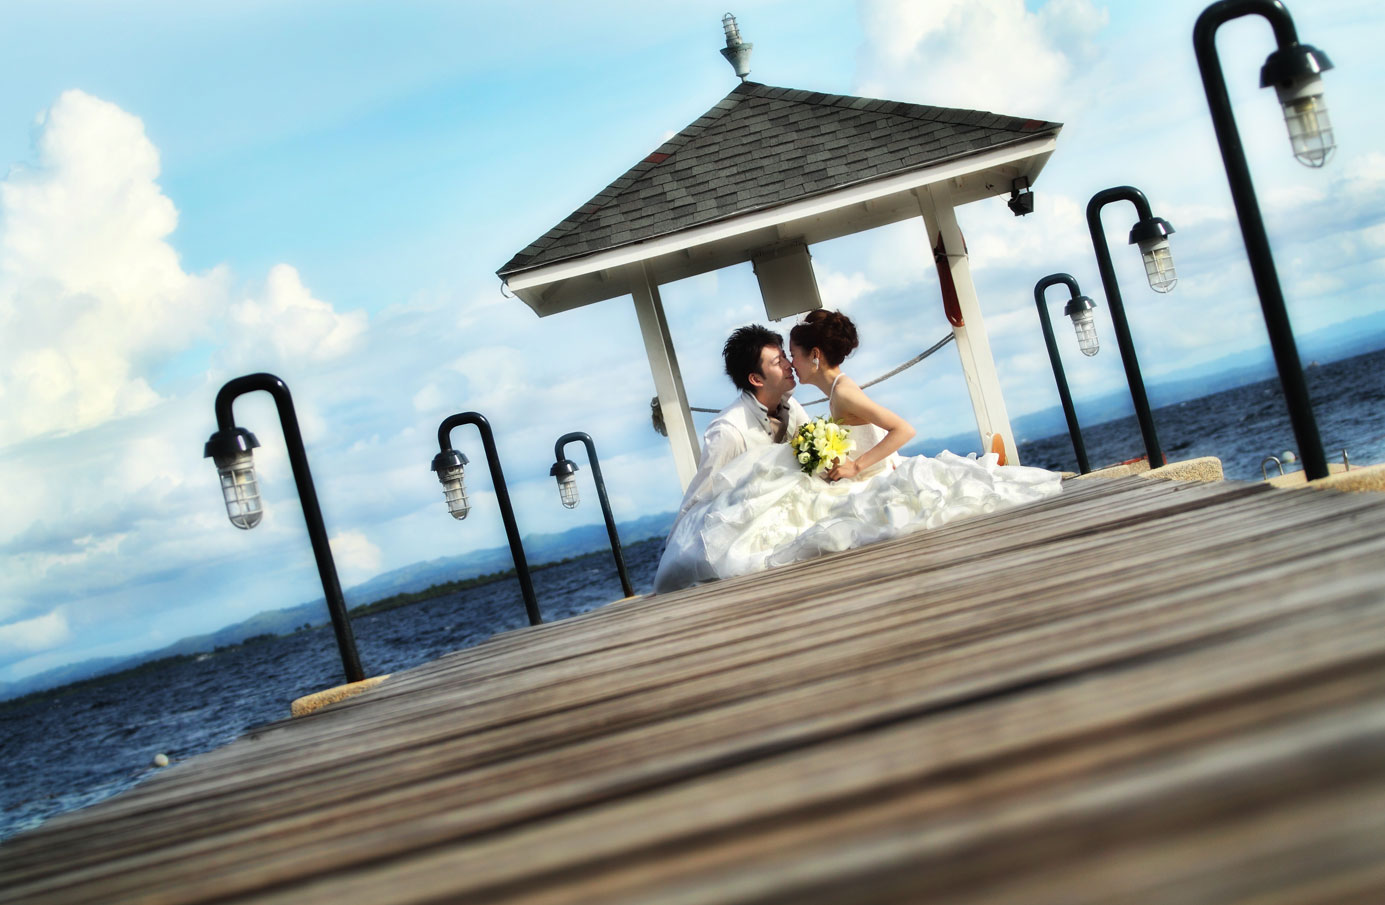 cebuweddingplantation6